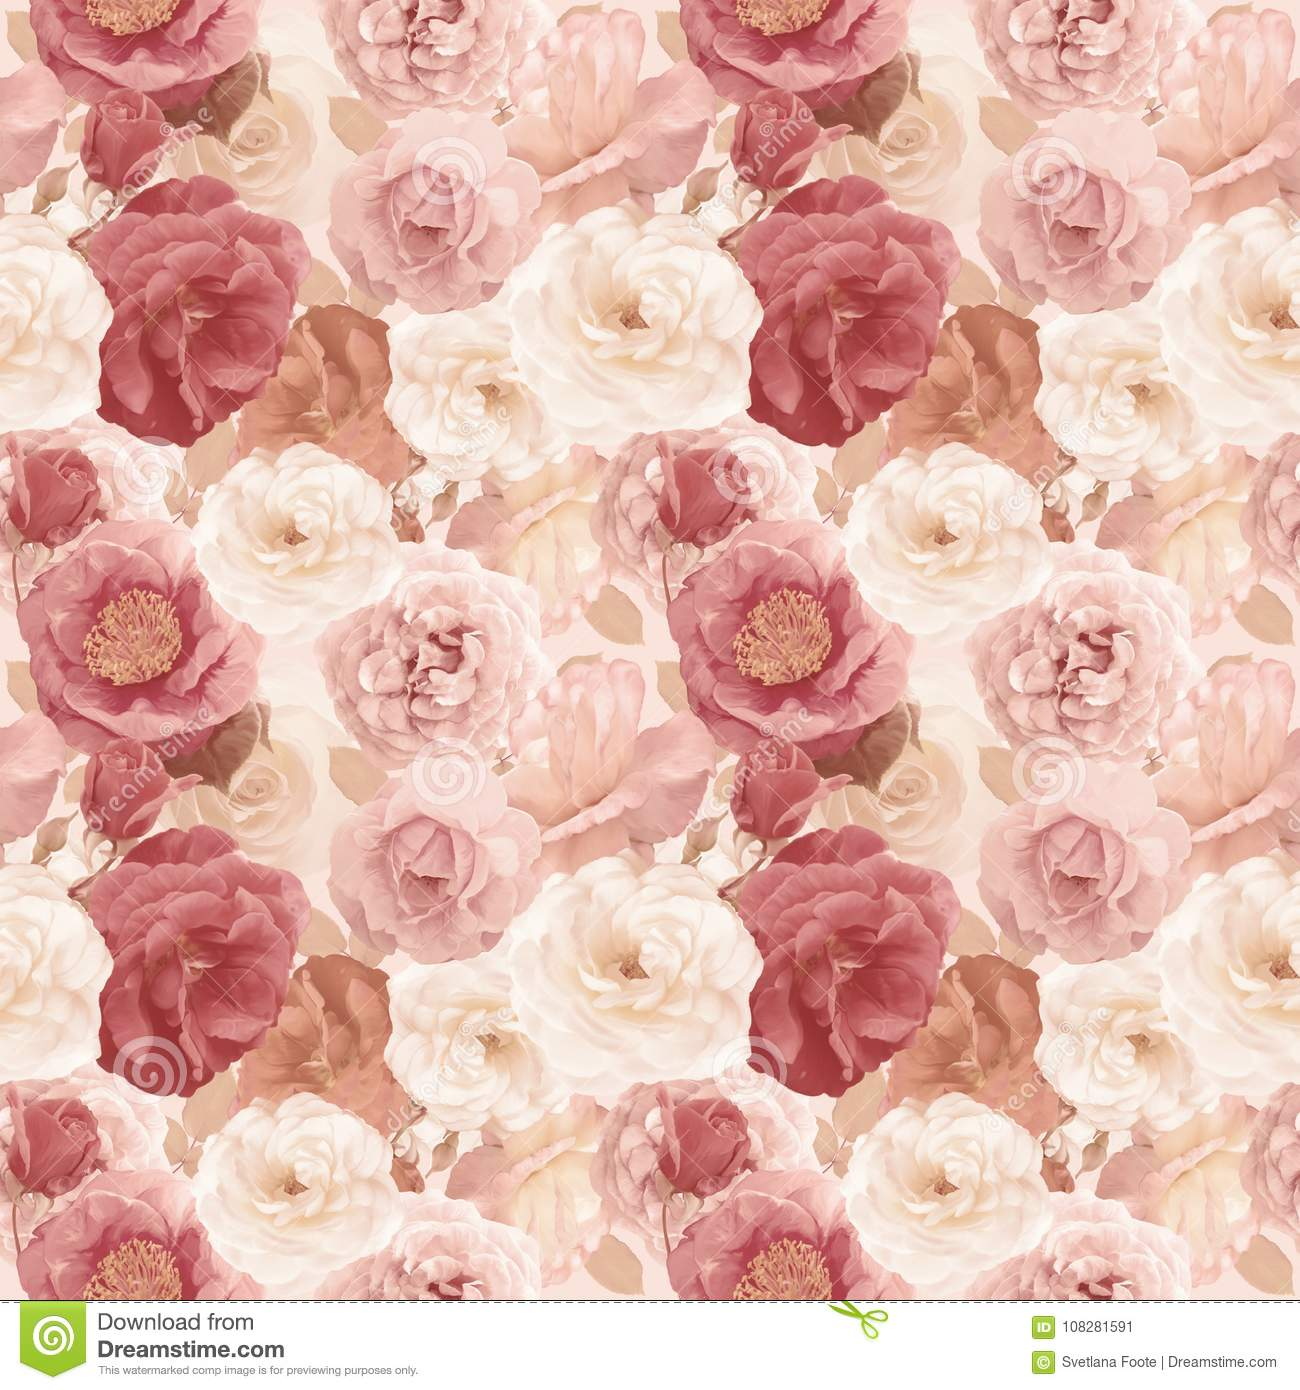 Seamless pattern with roses and leaves